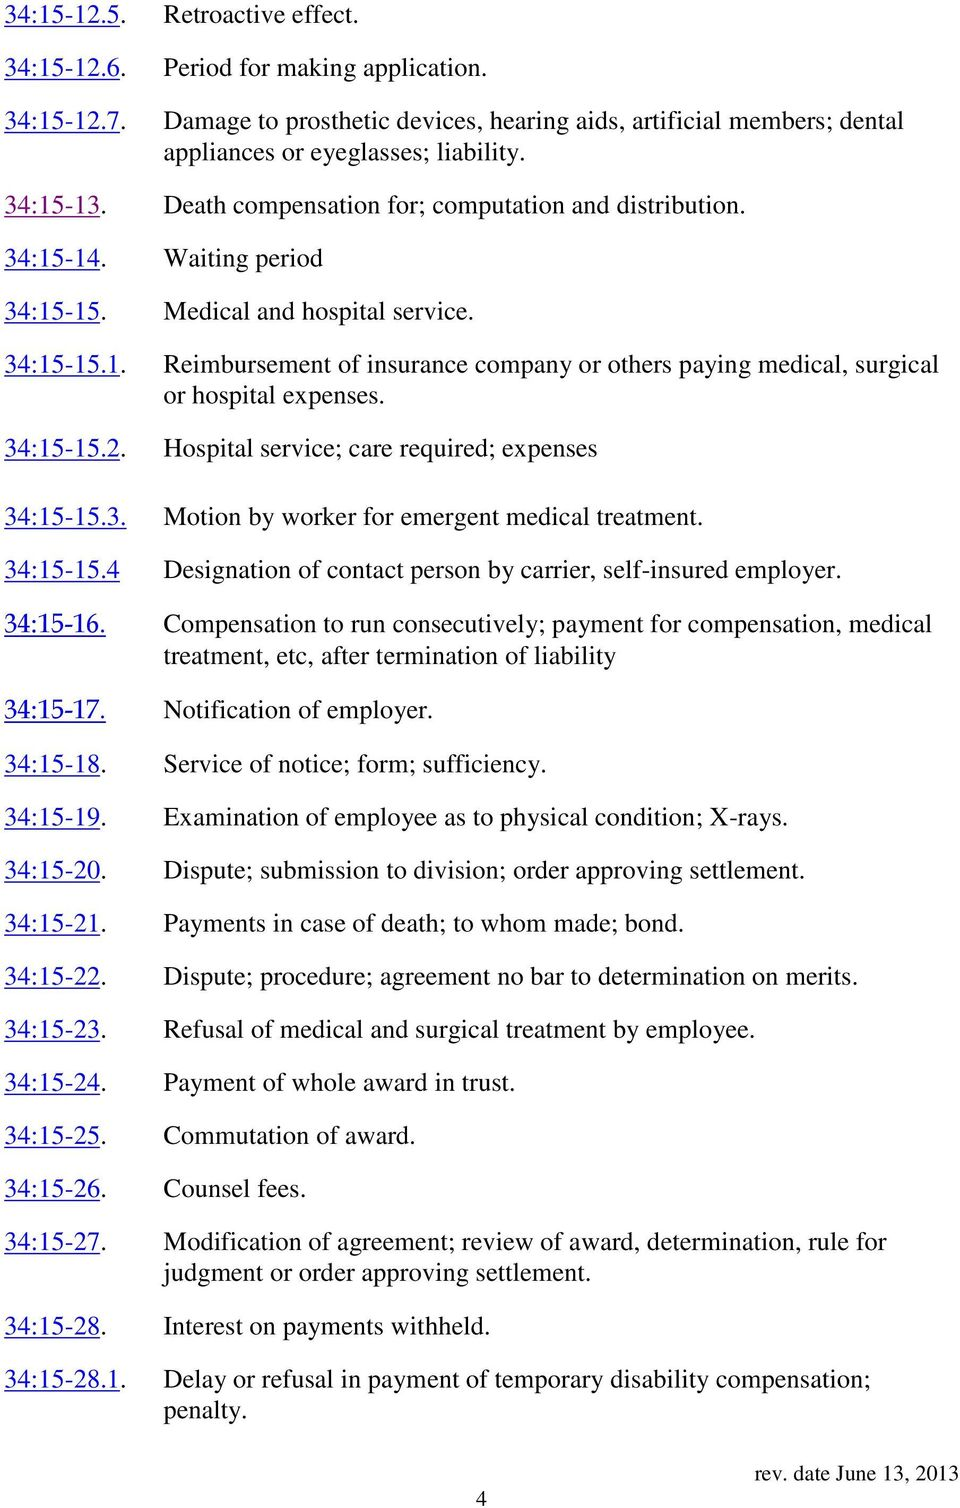 34:15-15.2. Hospital service; care required; expenses 34:15-15.3. Motion by worker for emergent medical treatment. 34:15-15.4 Designation of contact person by carrier, self-insured employer. 34:15-16.